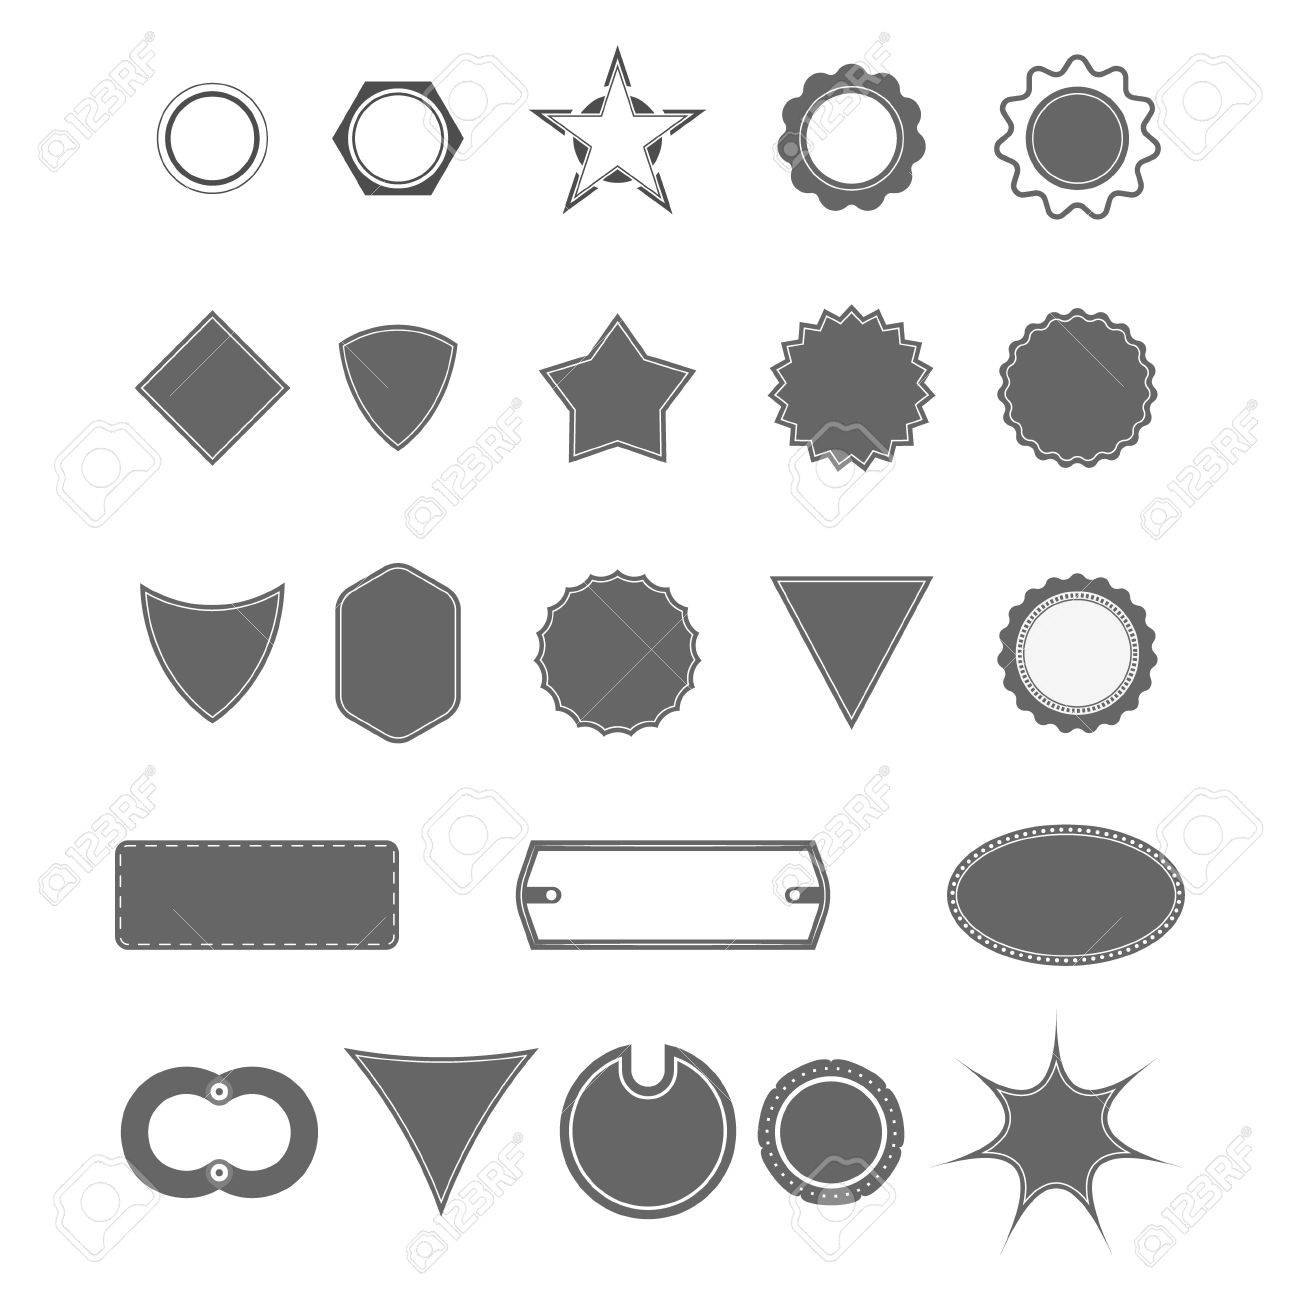 vector badge shapes, collection of design elements for creating